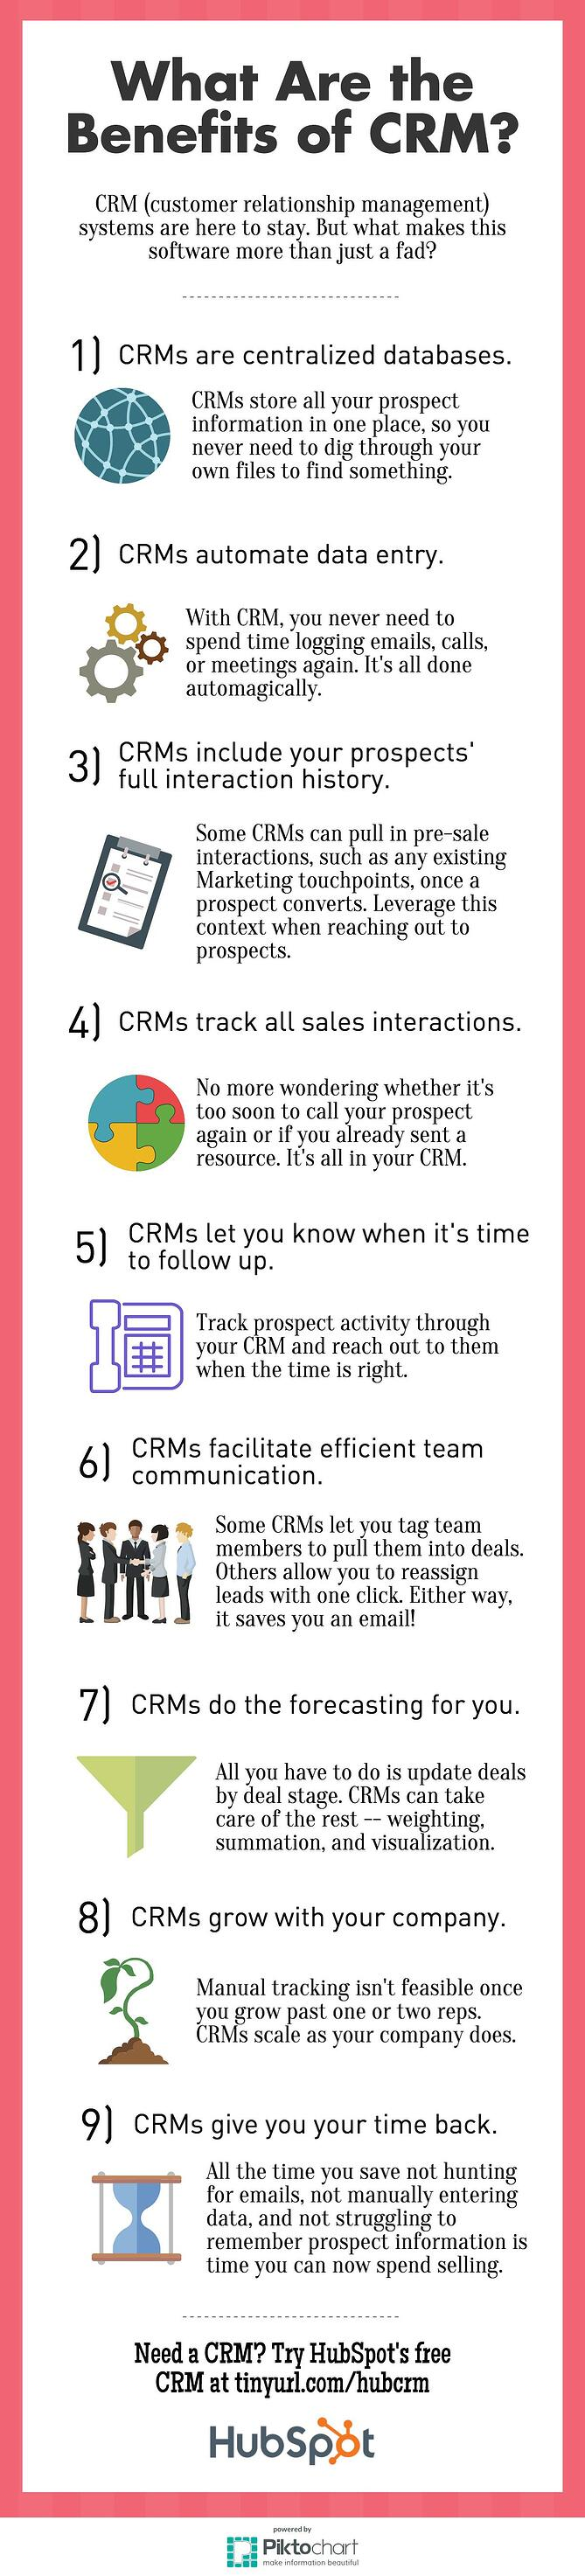 benefits-of-crm.jpeg